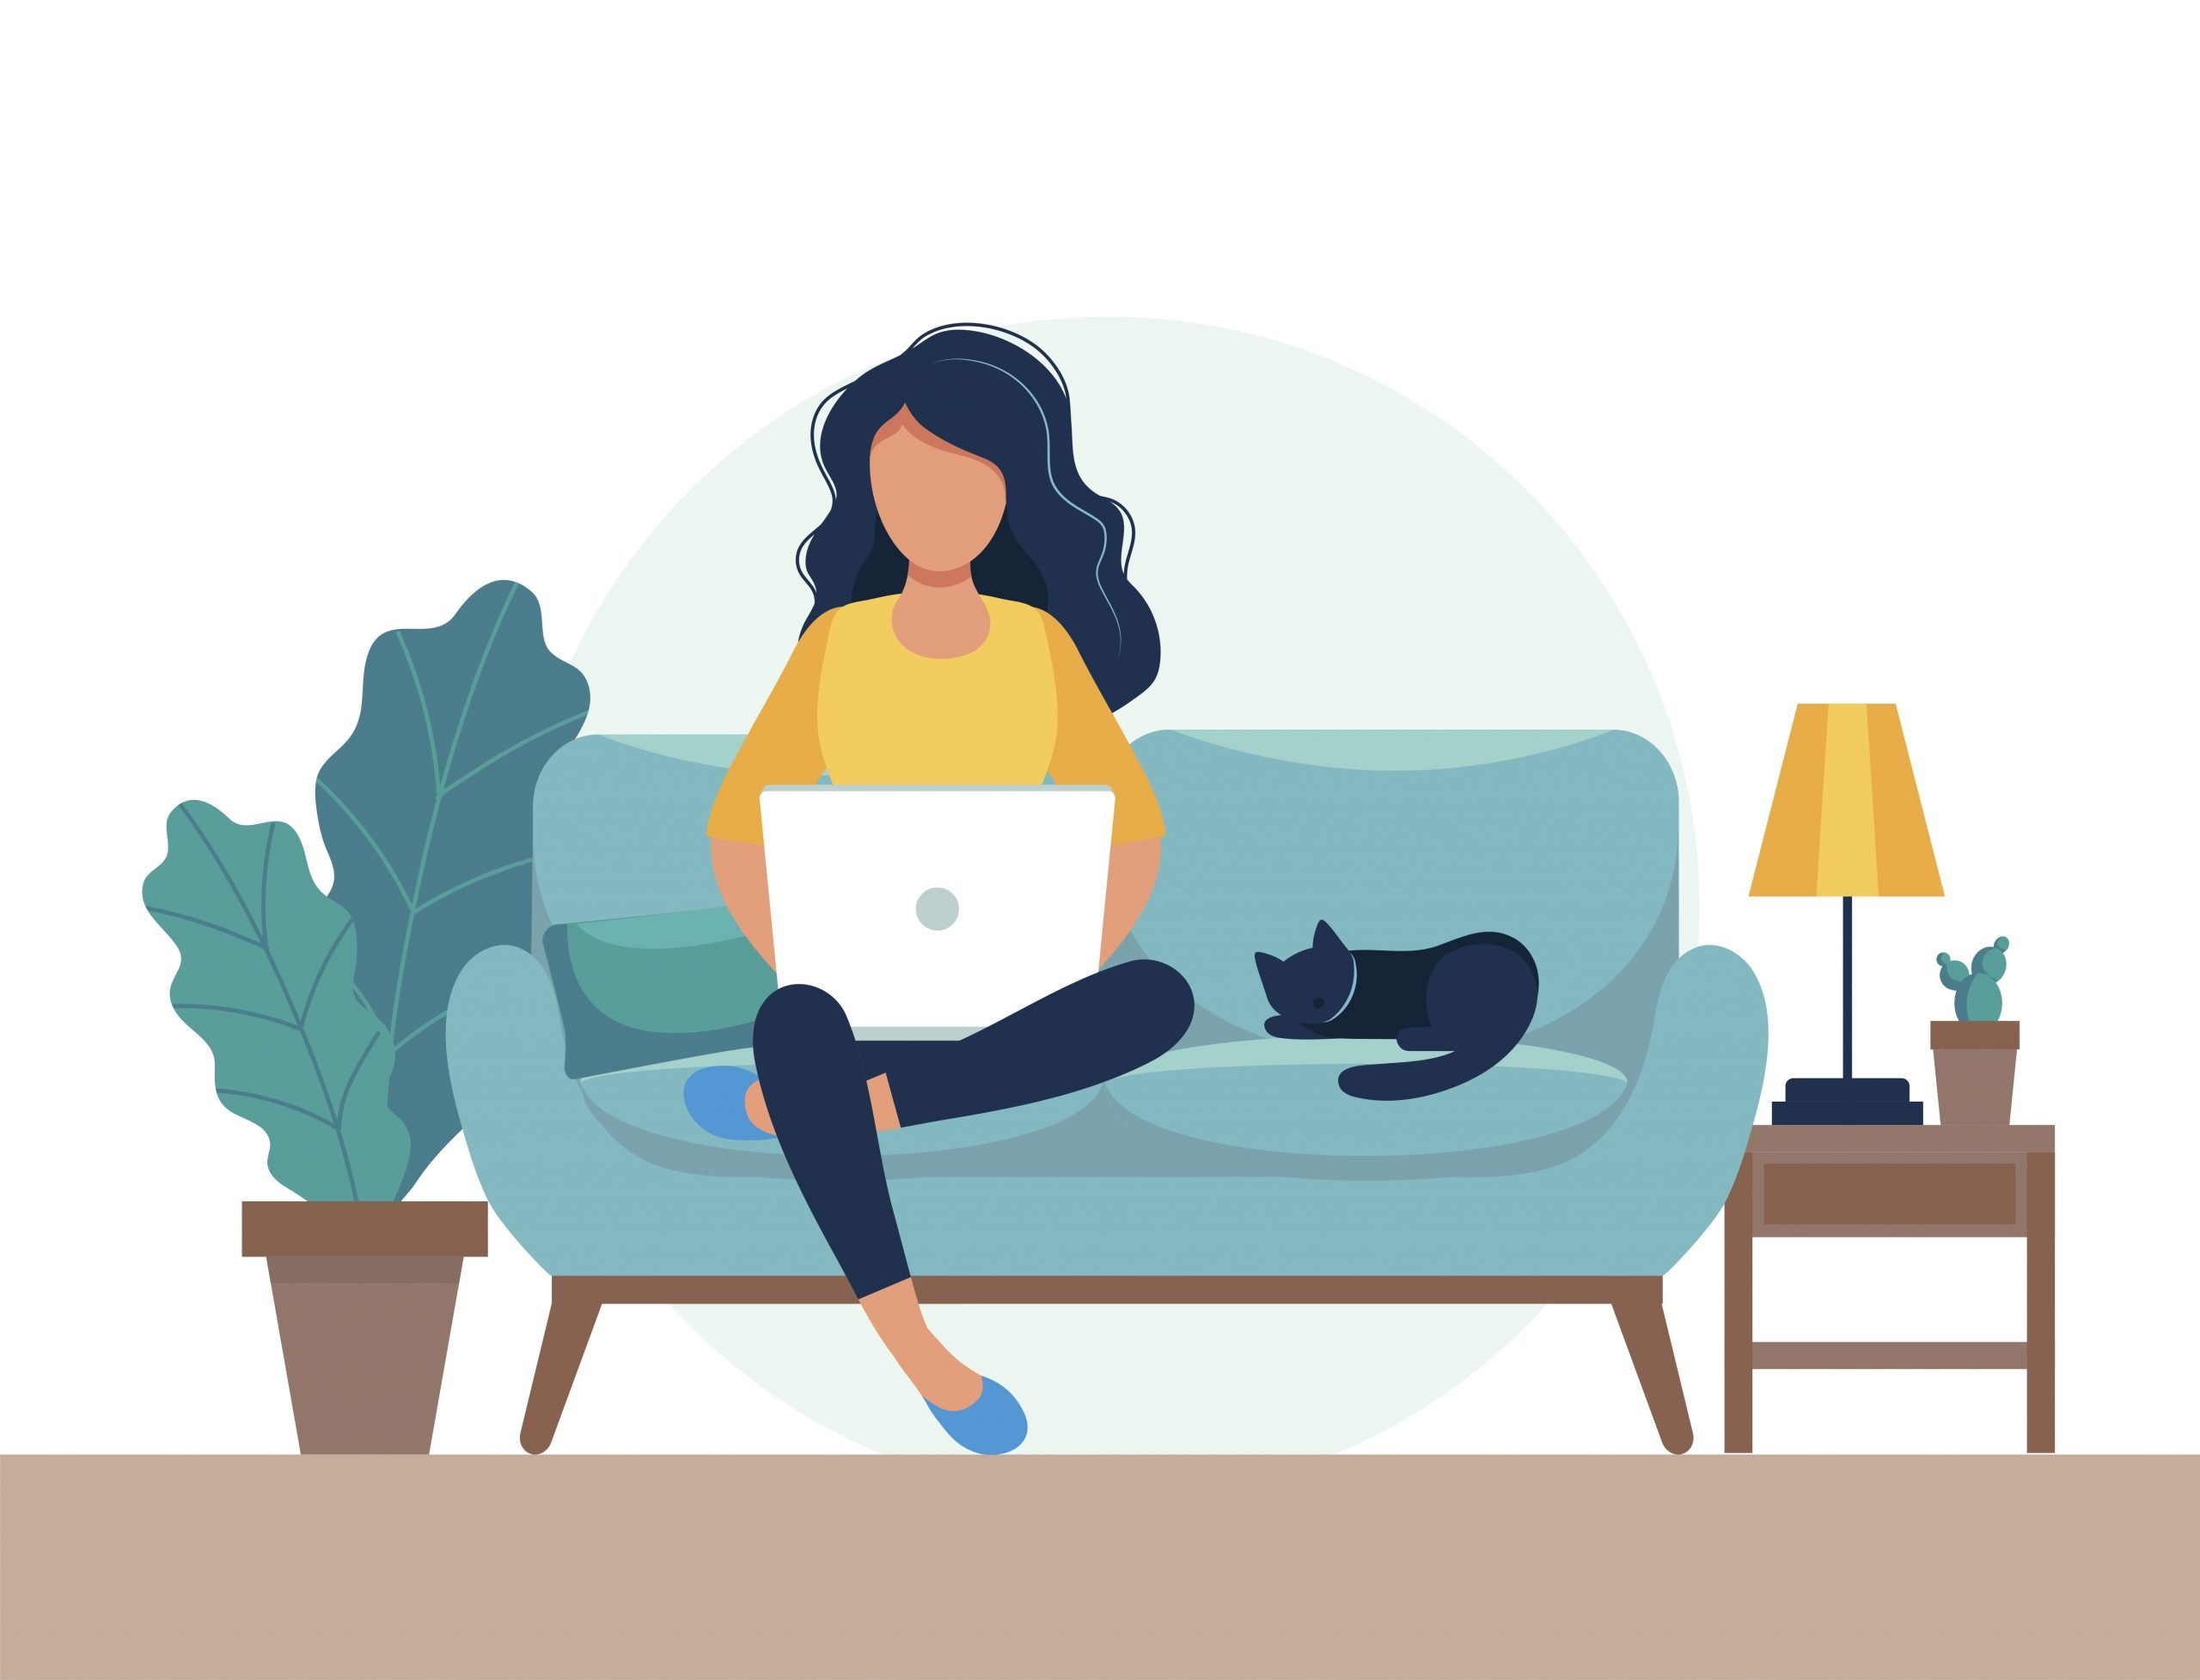 Woman sat on sofa with laptop. 9 strategies that work for working from home